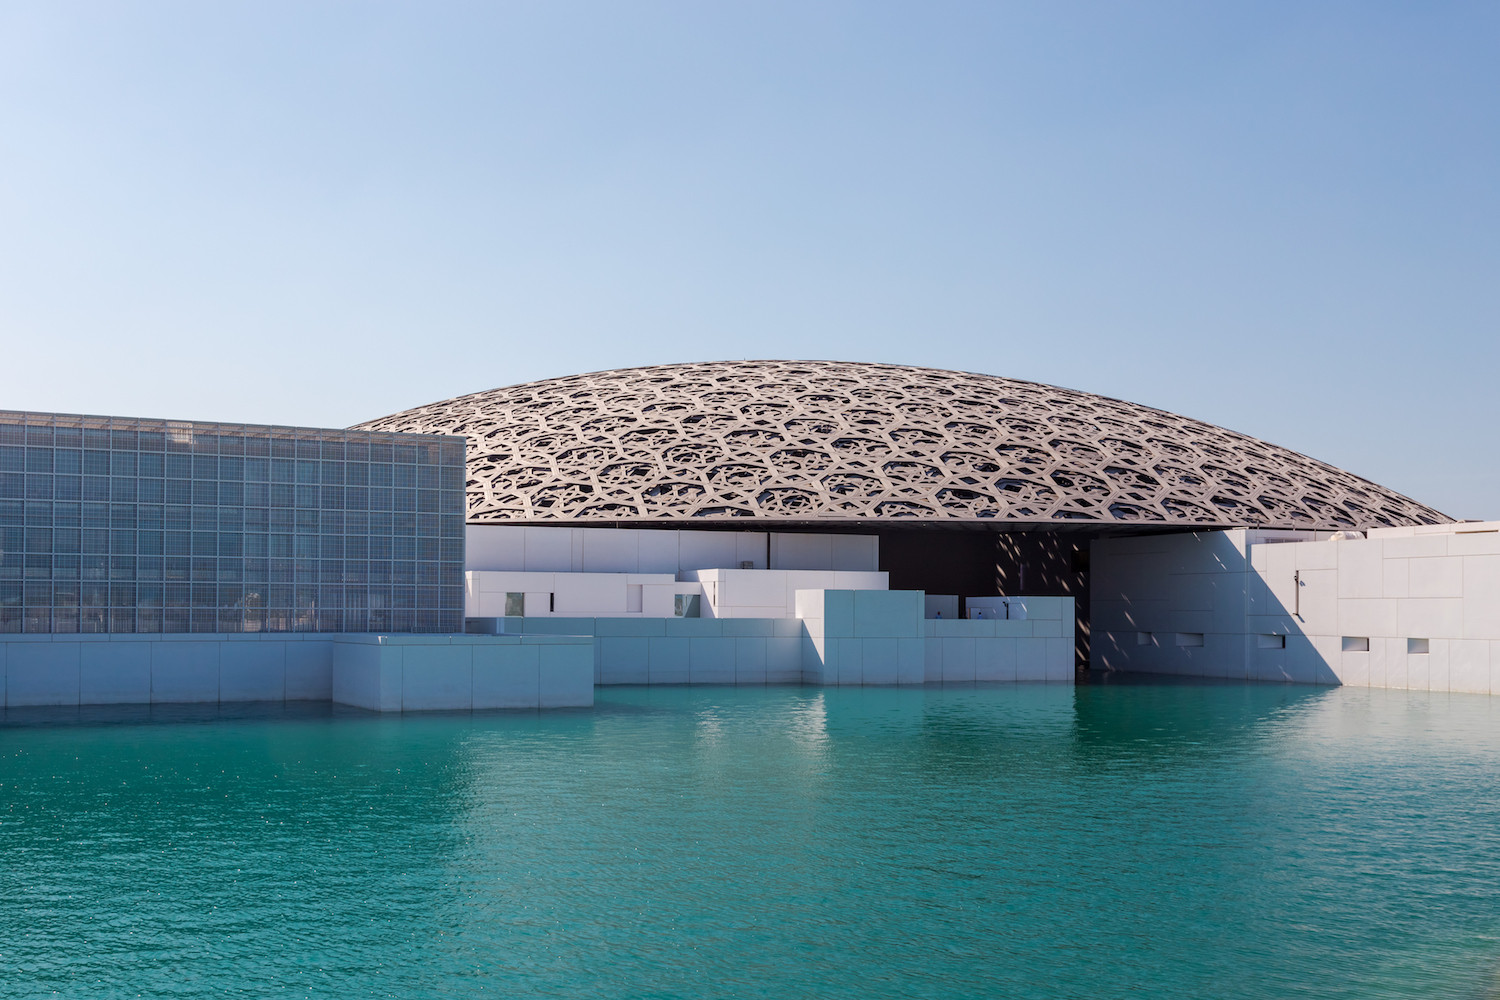 Seeing the Louvre Abu Dhabi in another light: Is it exhibiting loot from Iraq?